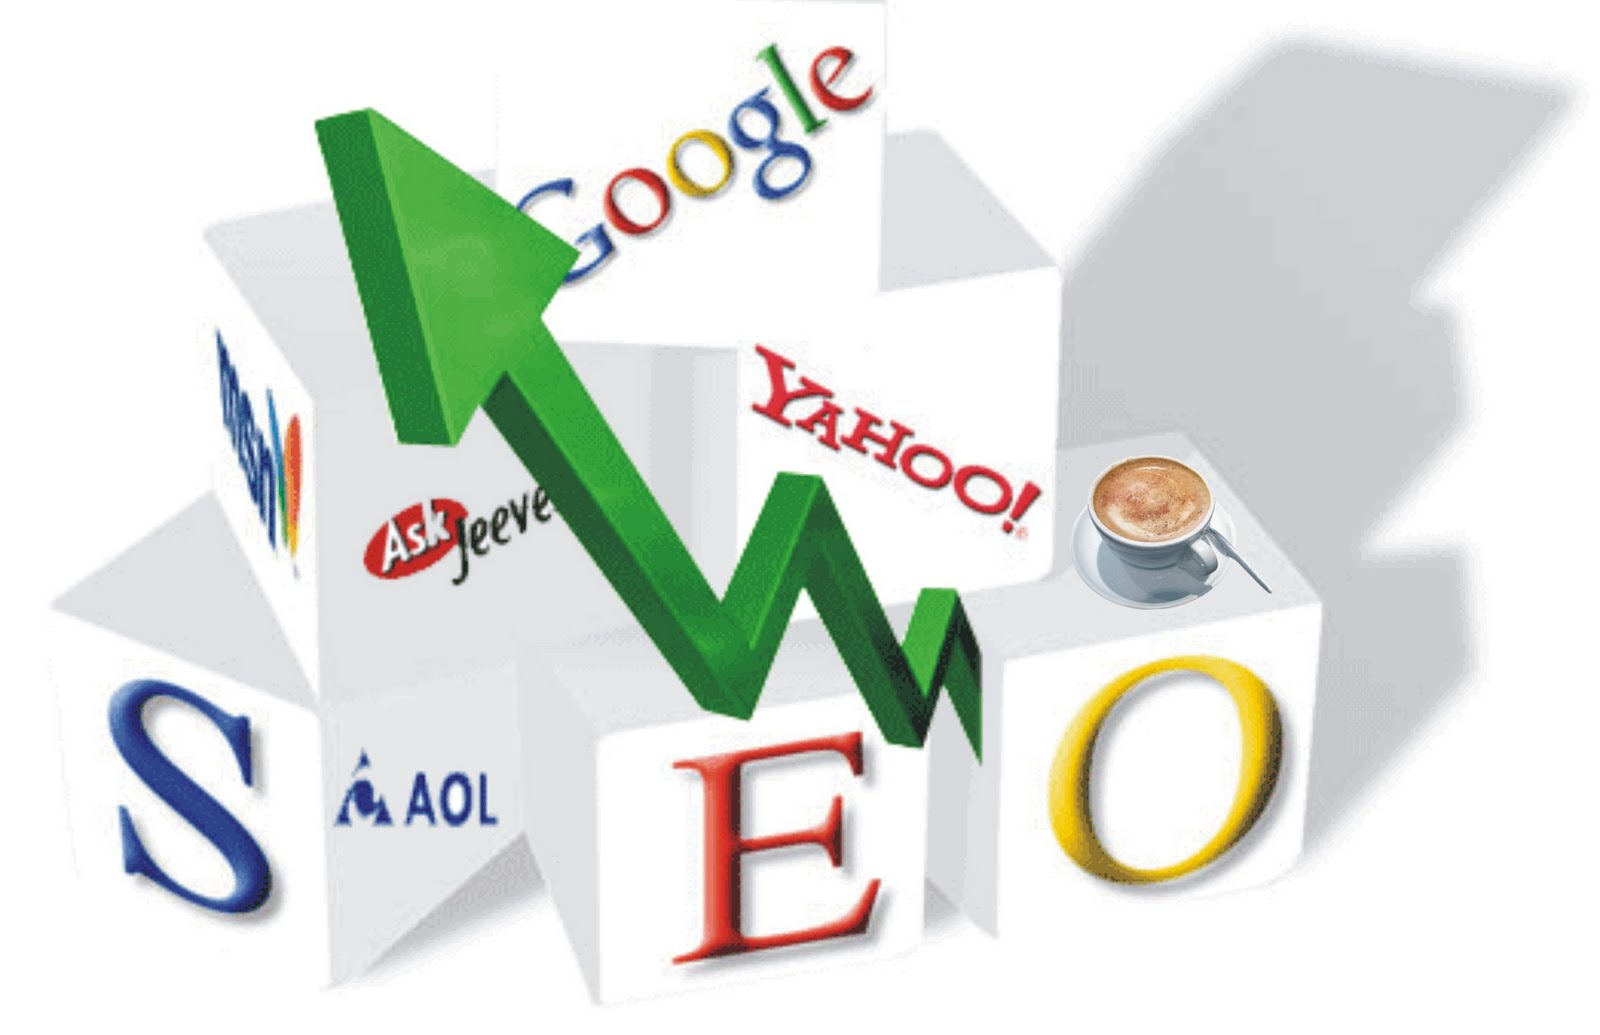 Search Engine Optimization SEO | SEO James